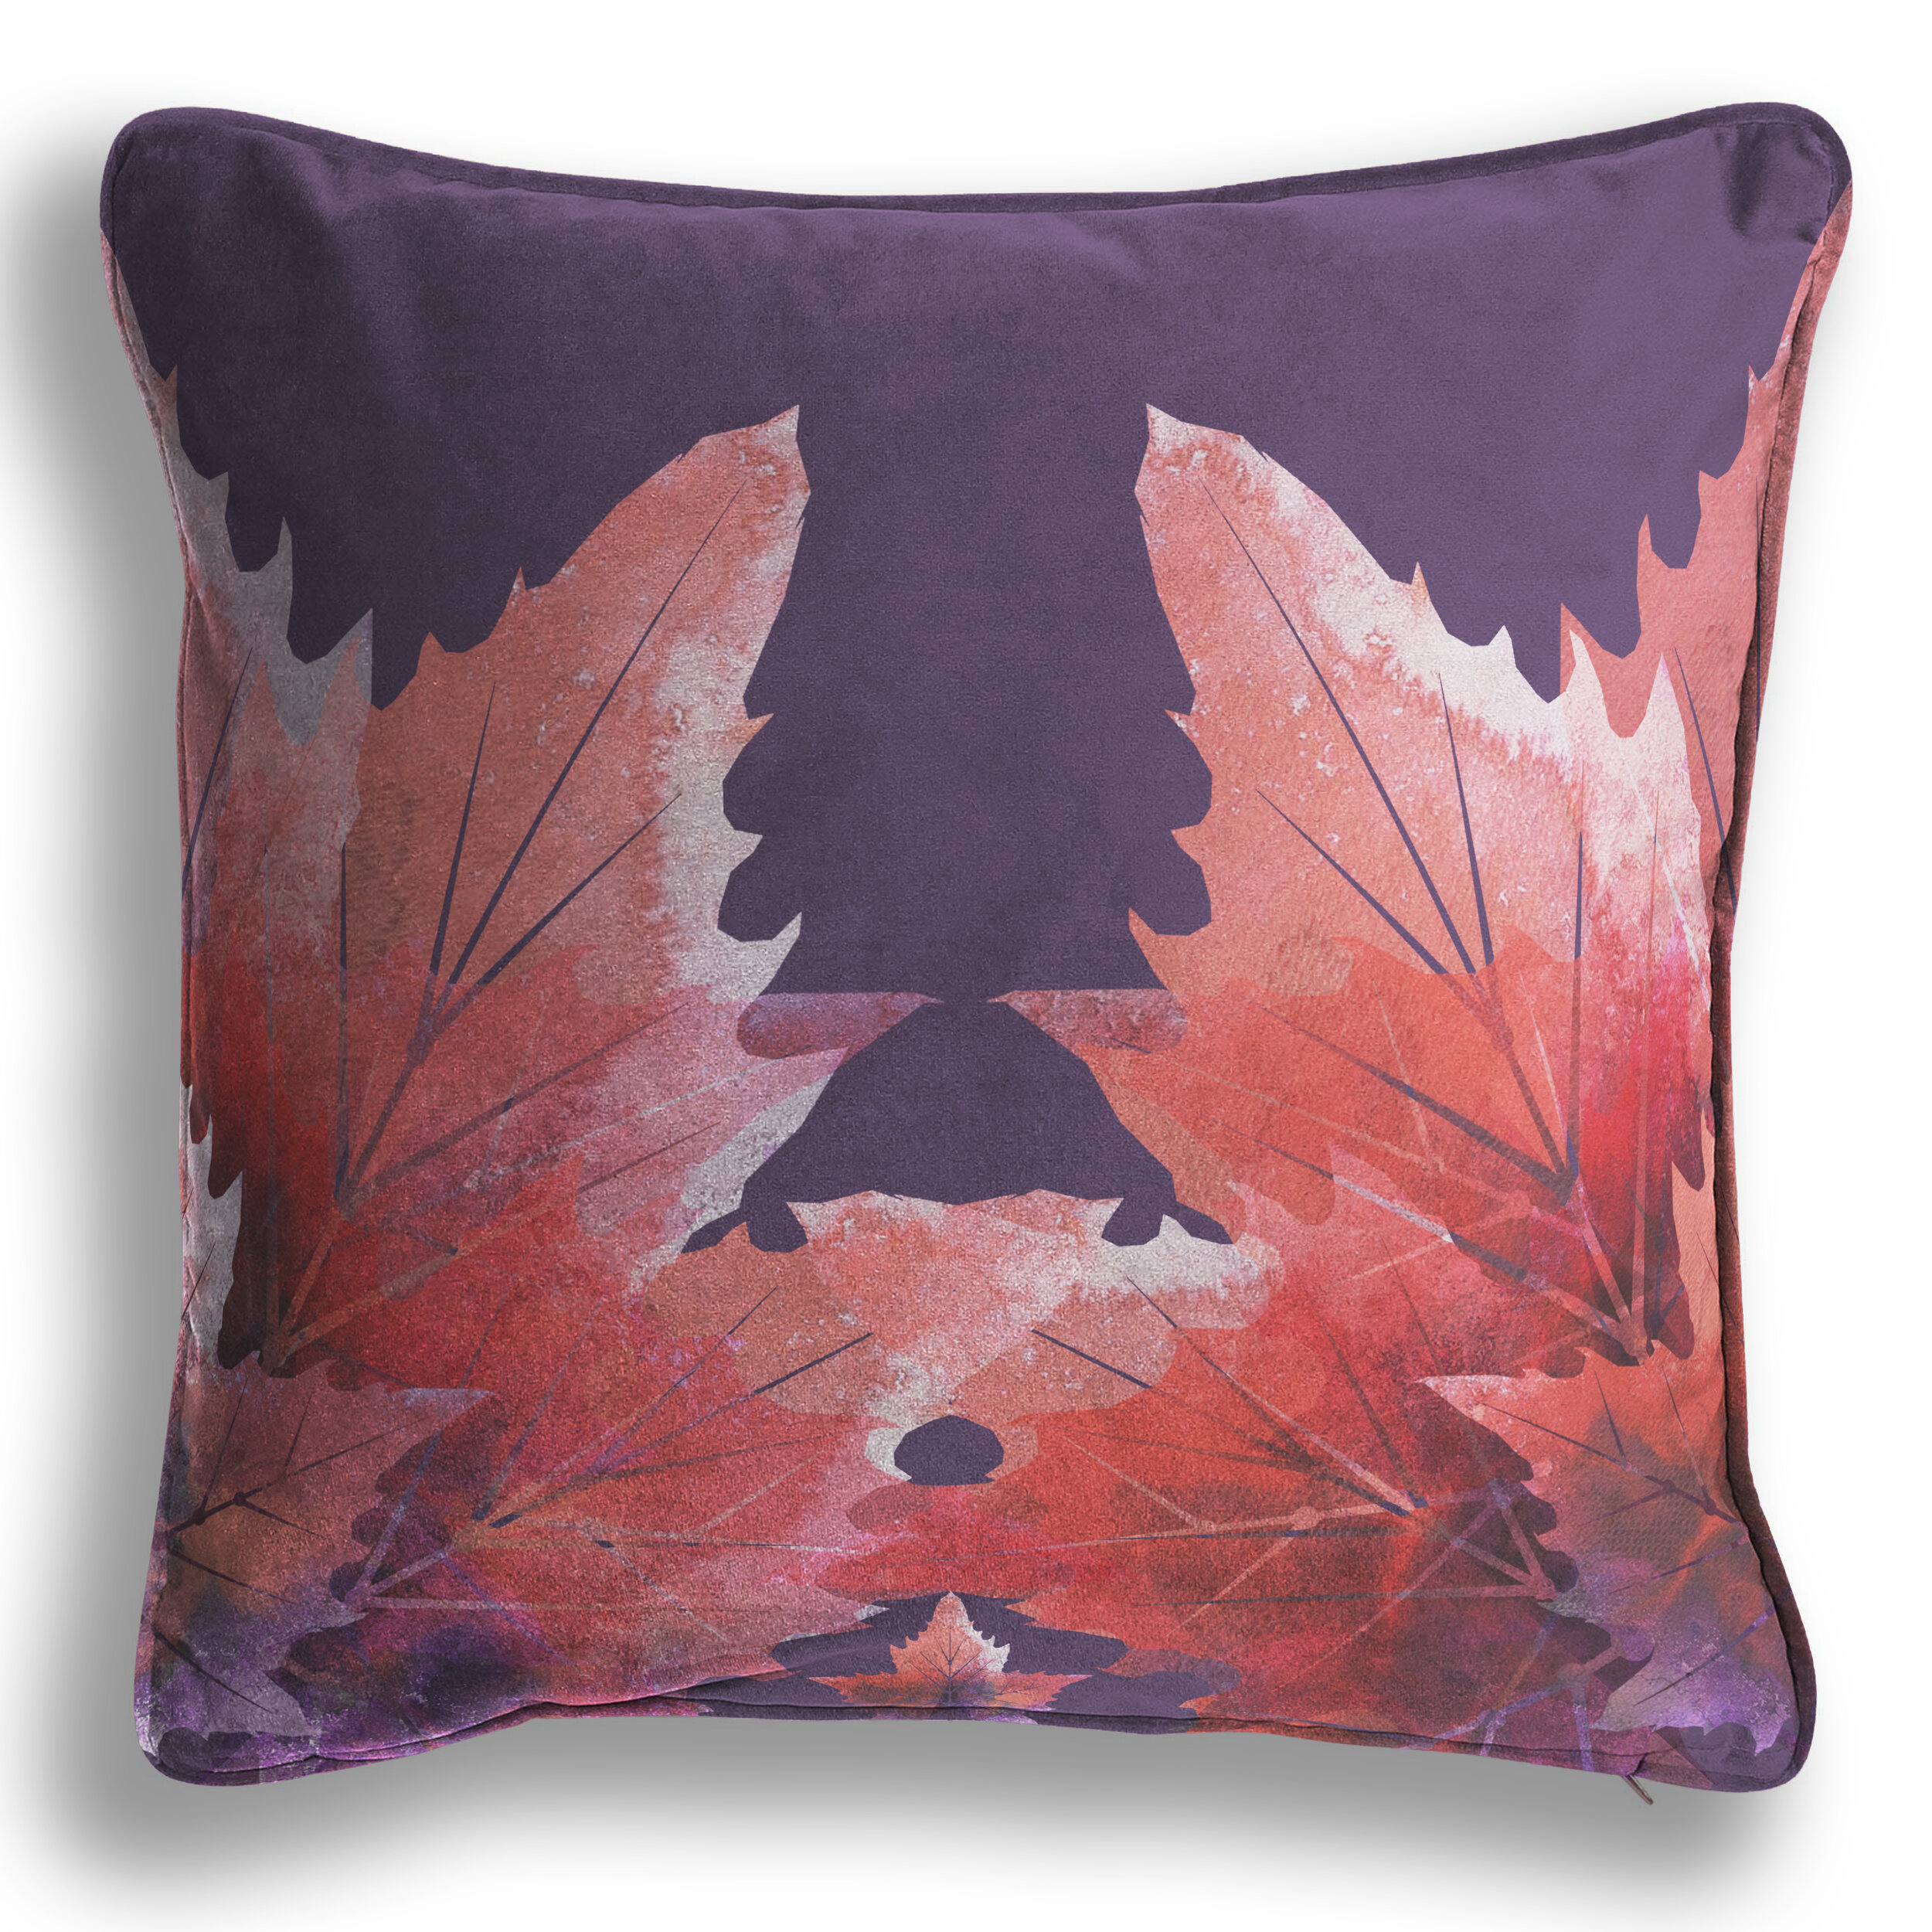 Opulent Sycamore Cushion